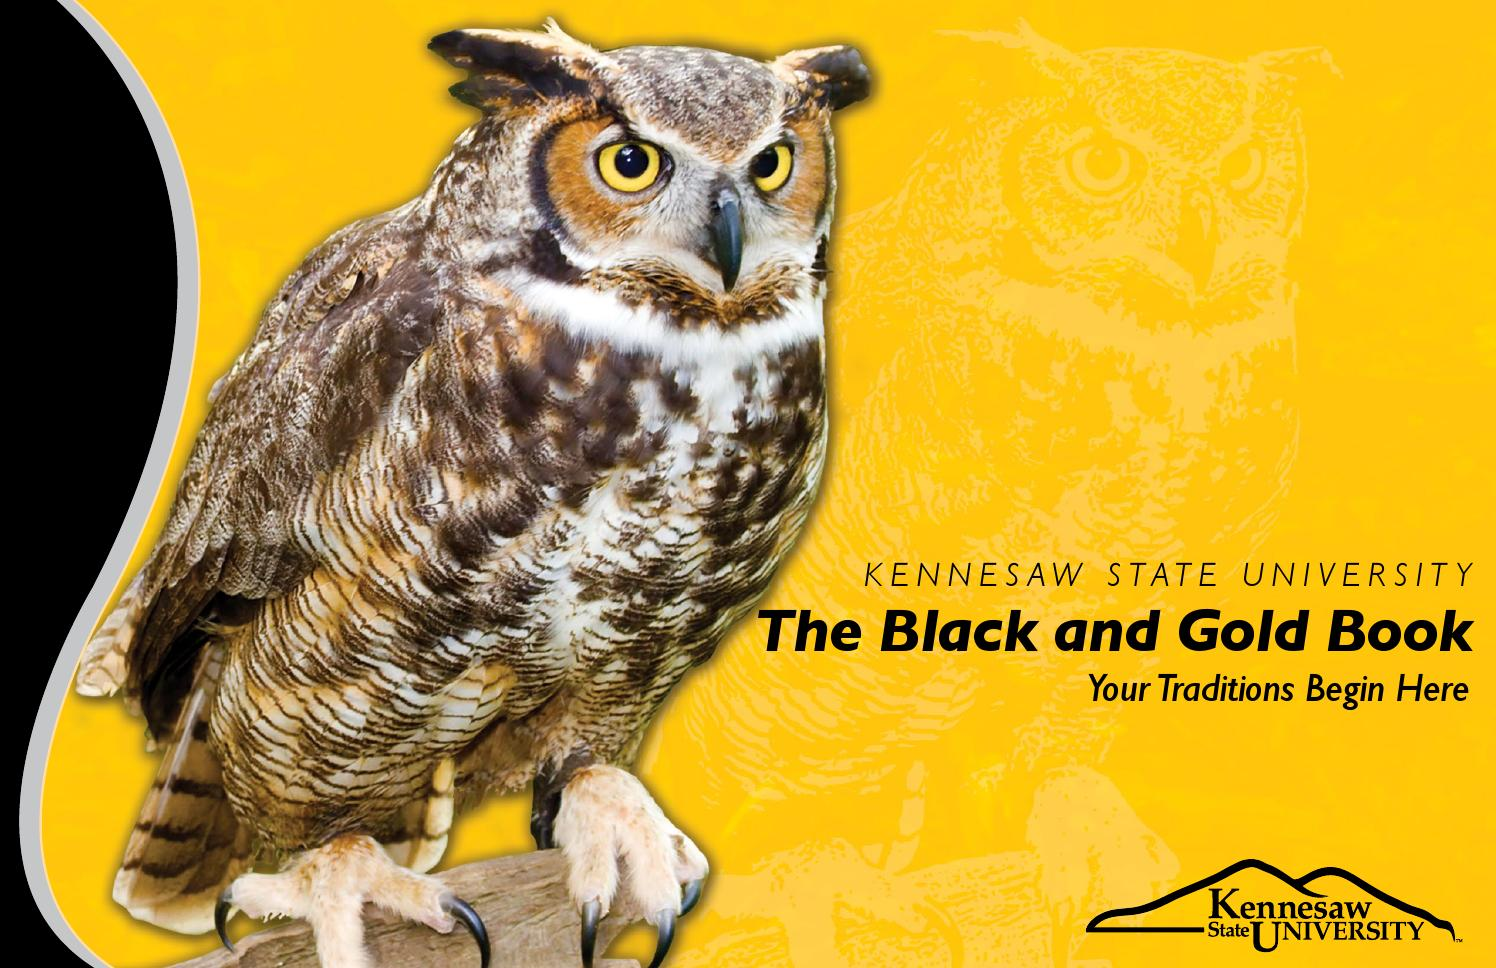 Kennesaw State University S Black And Gold Book By Kennesaw State University Alumni Association Issuu